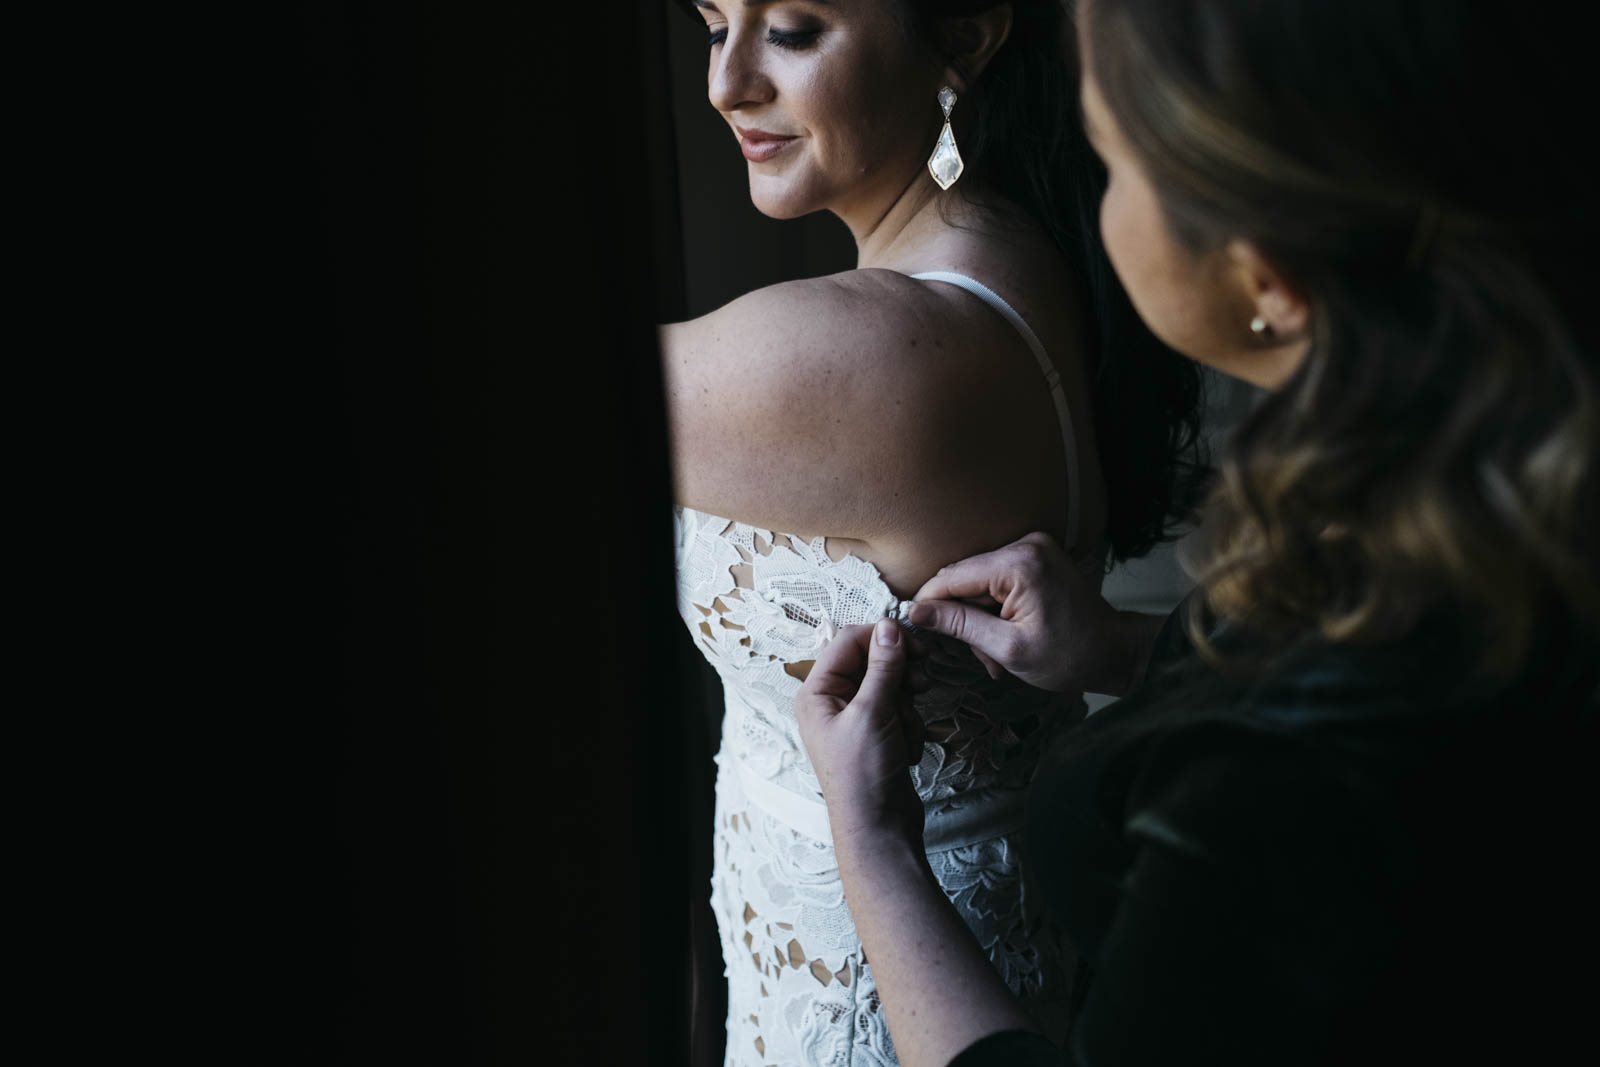 Bride getting into dress on wedding day.